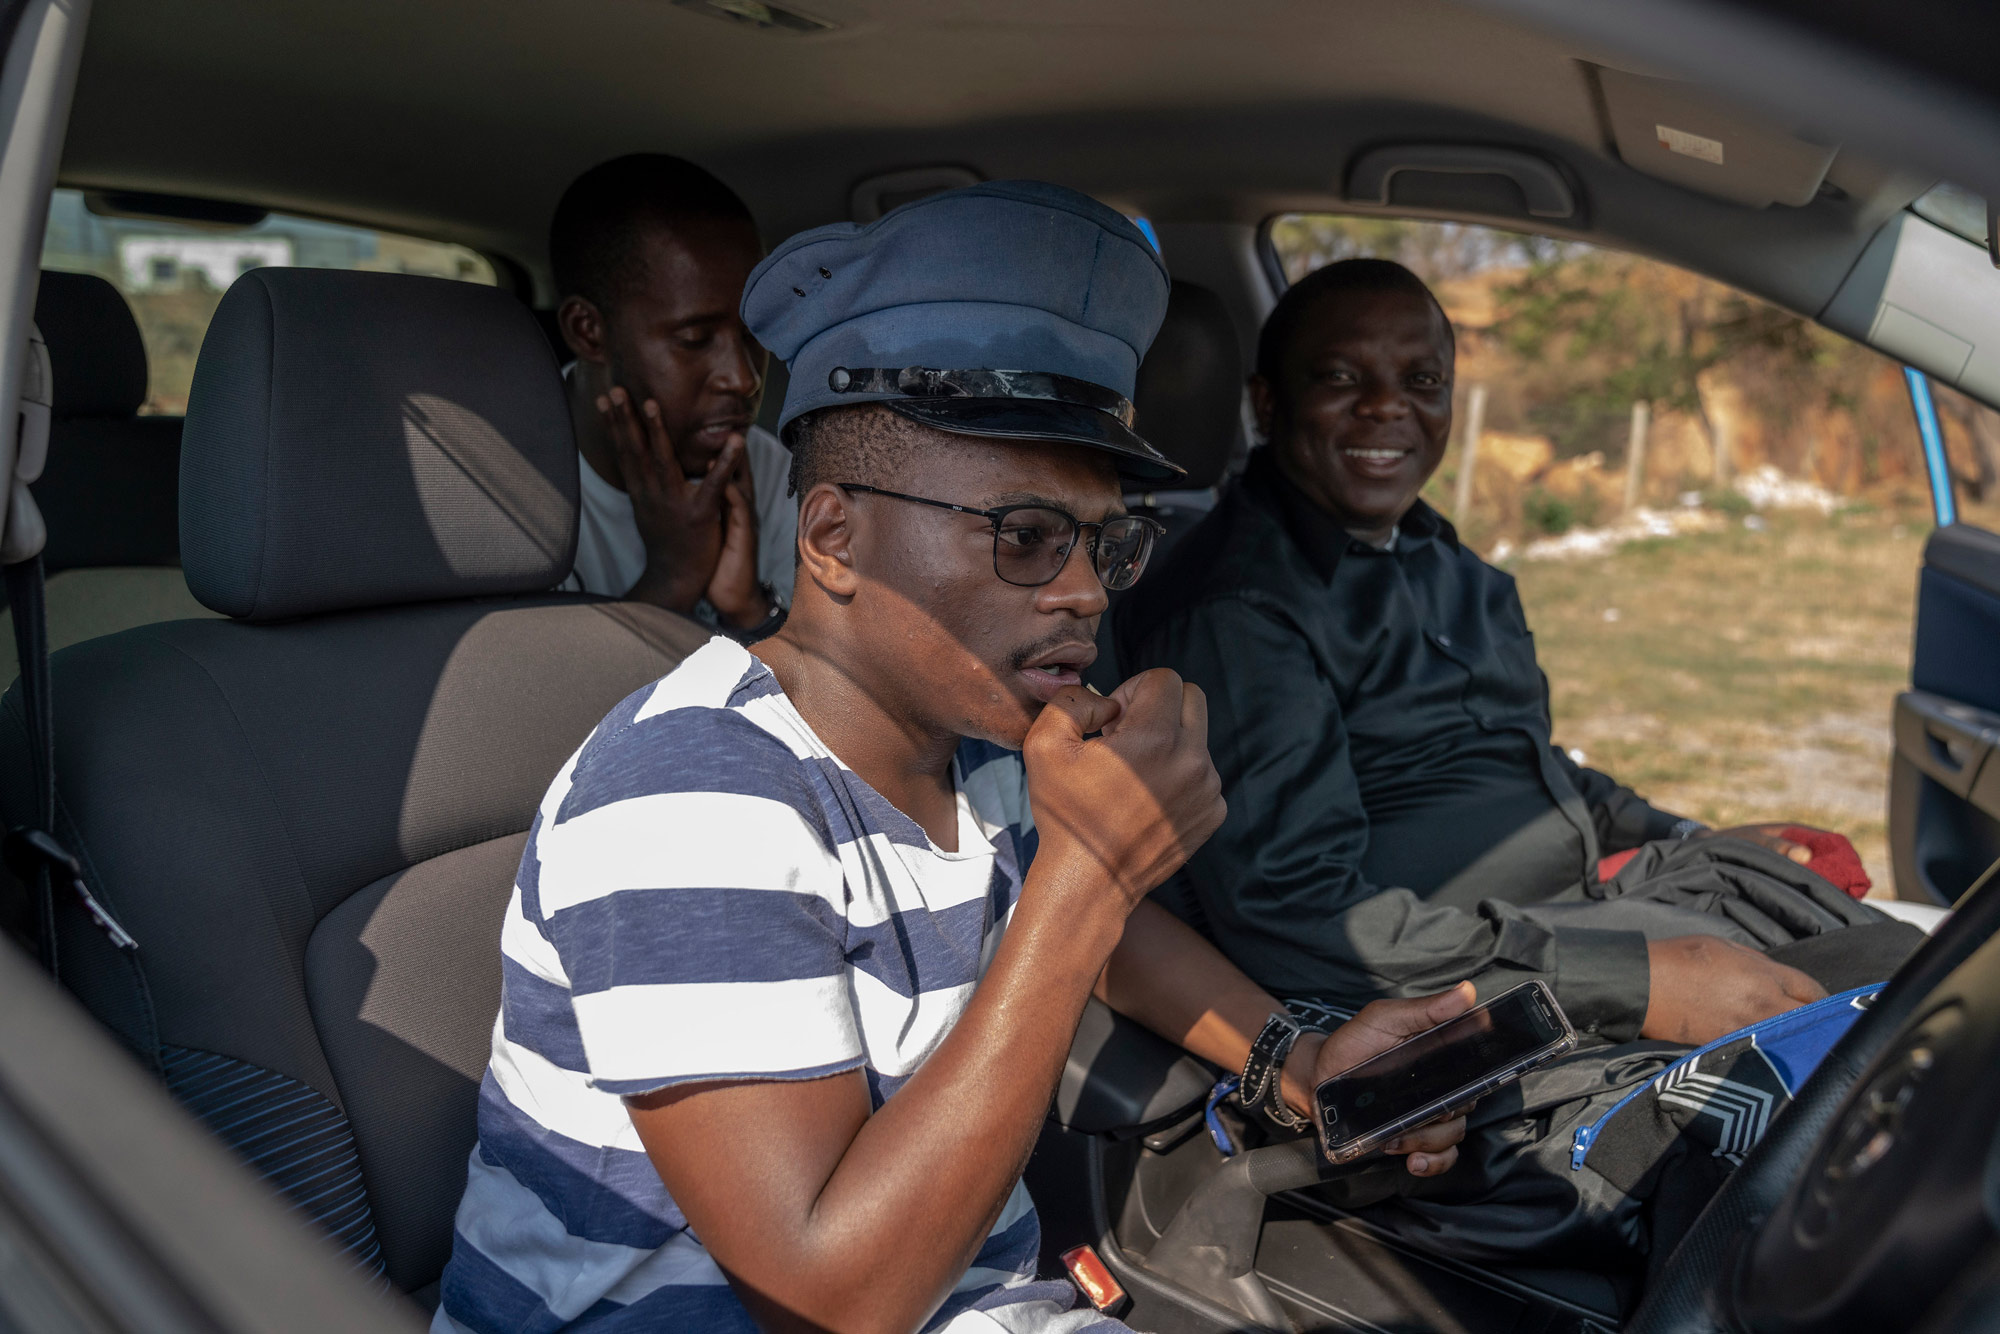 7 August 2019: Comedians S'lwane, Smallz and Gedlembane recording a video in their car with an iPhone. They use the camera selfie mode to create videos that sometimes get more than 100 000 organic views on Facebook.